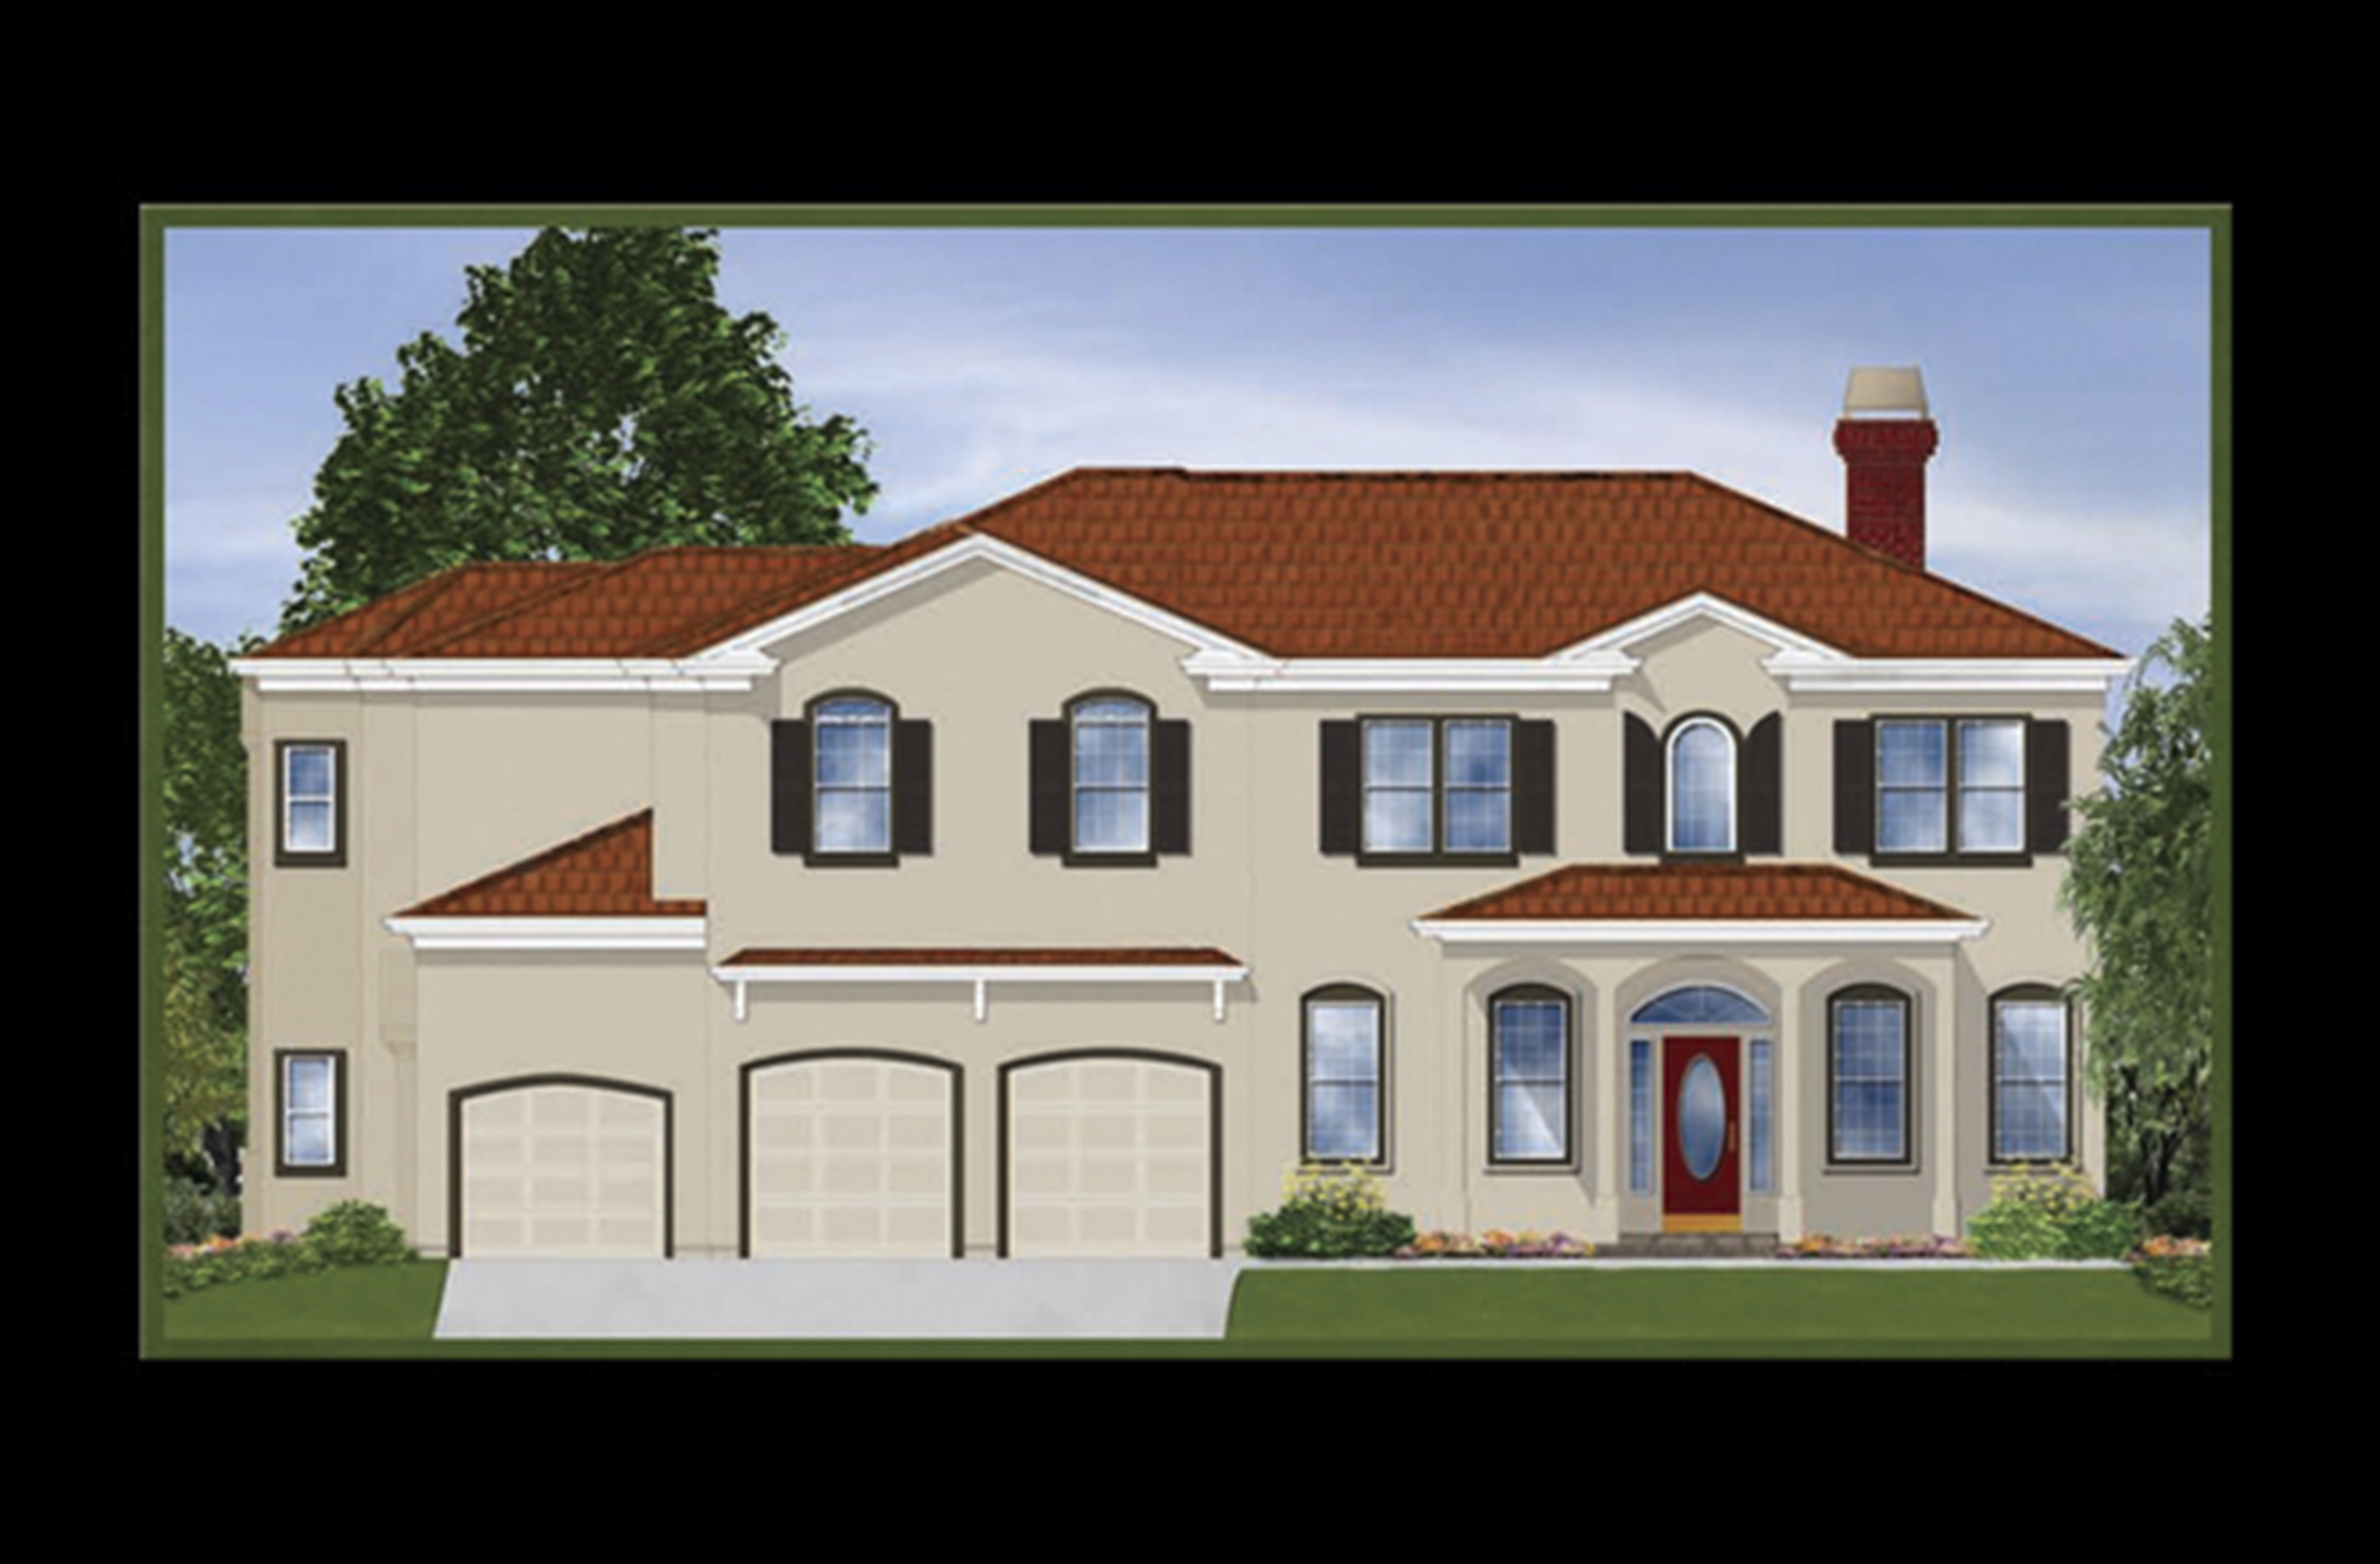 Illustration | Loera Homes - Architectural Rendering 1